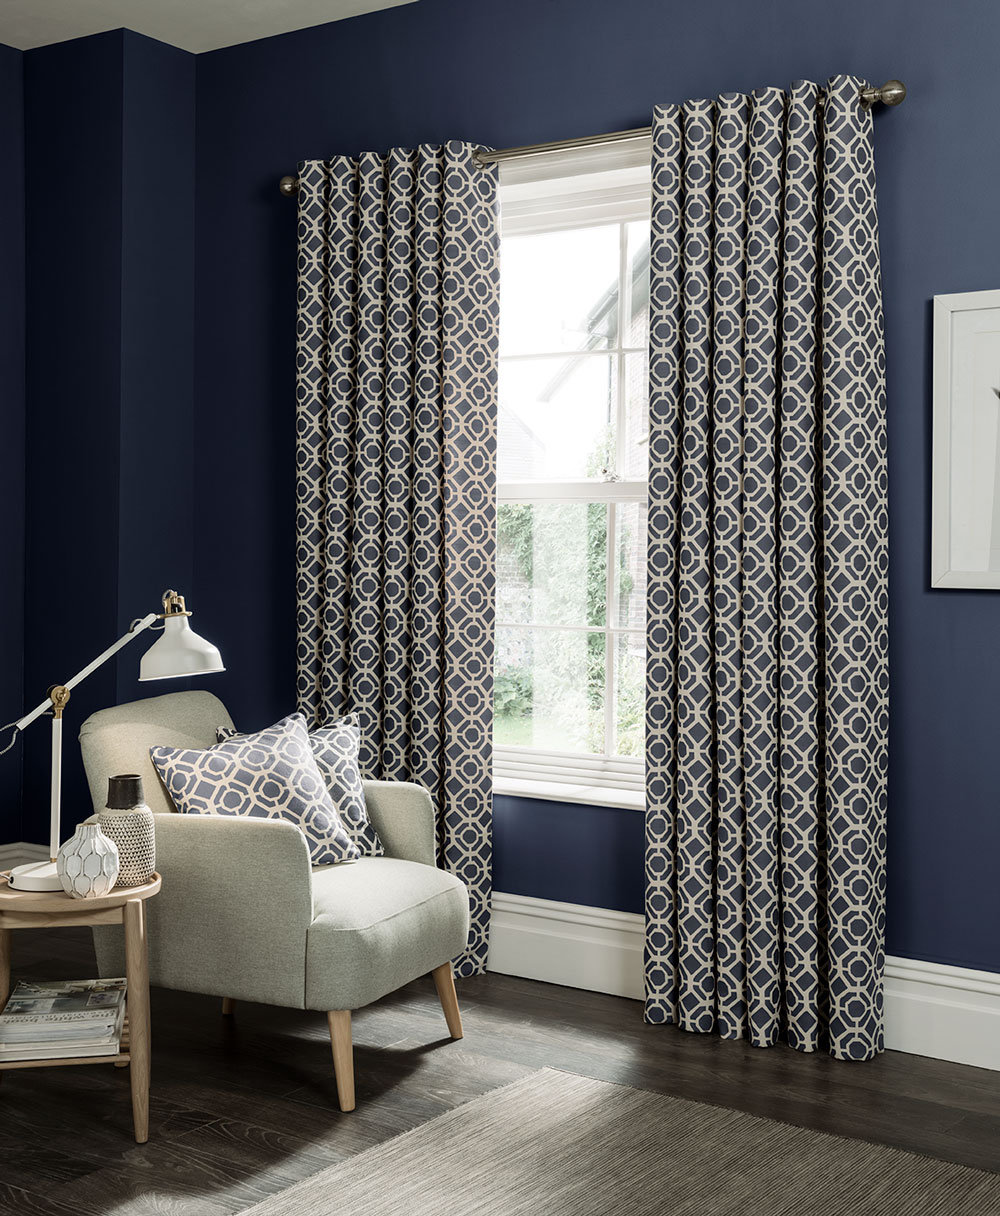 Studio G Castello Eyelet Curtains Indigo Ready Made Curtains - Product code: M1103/02/46X5